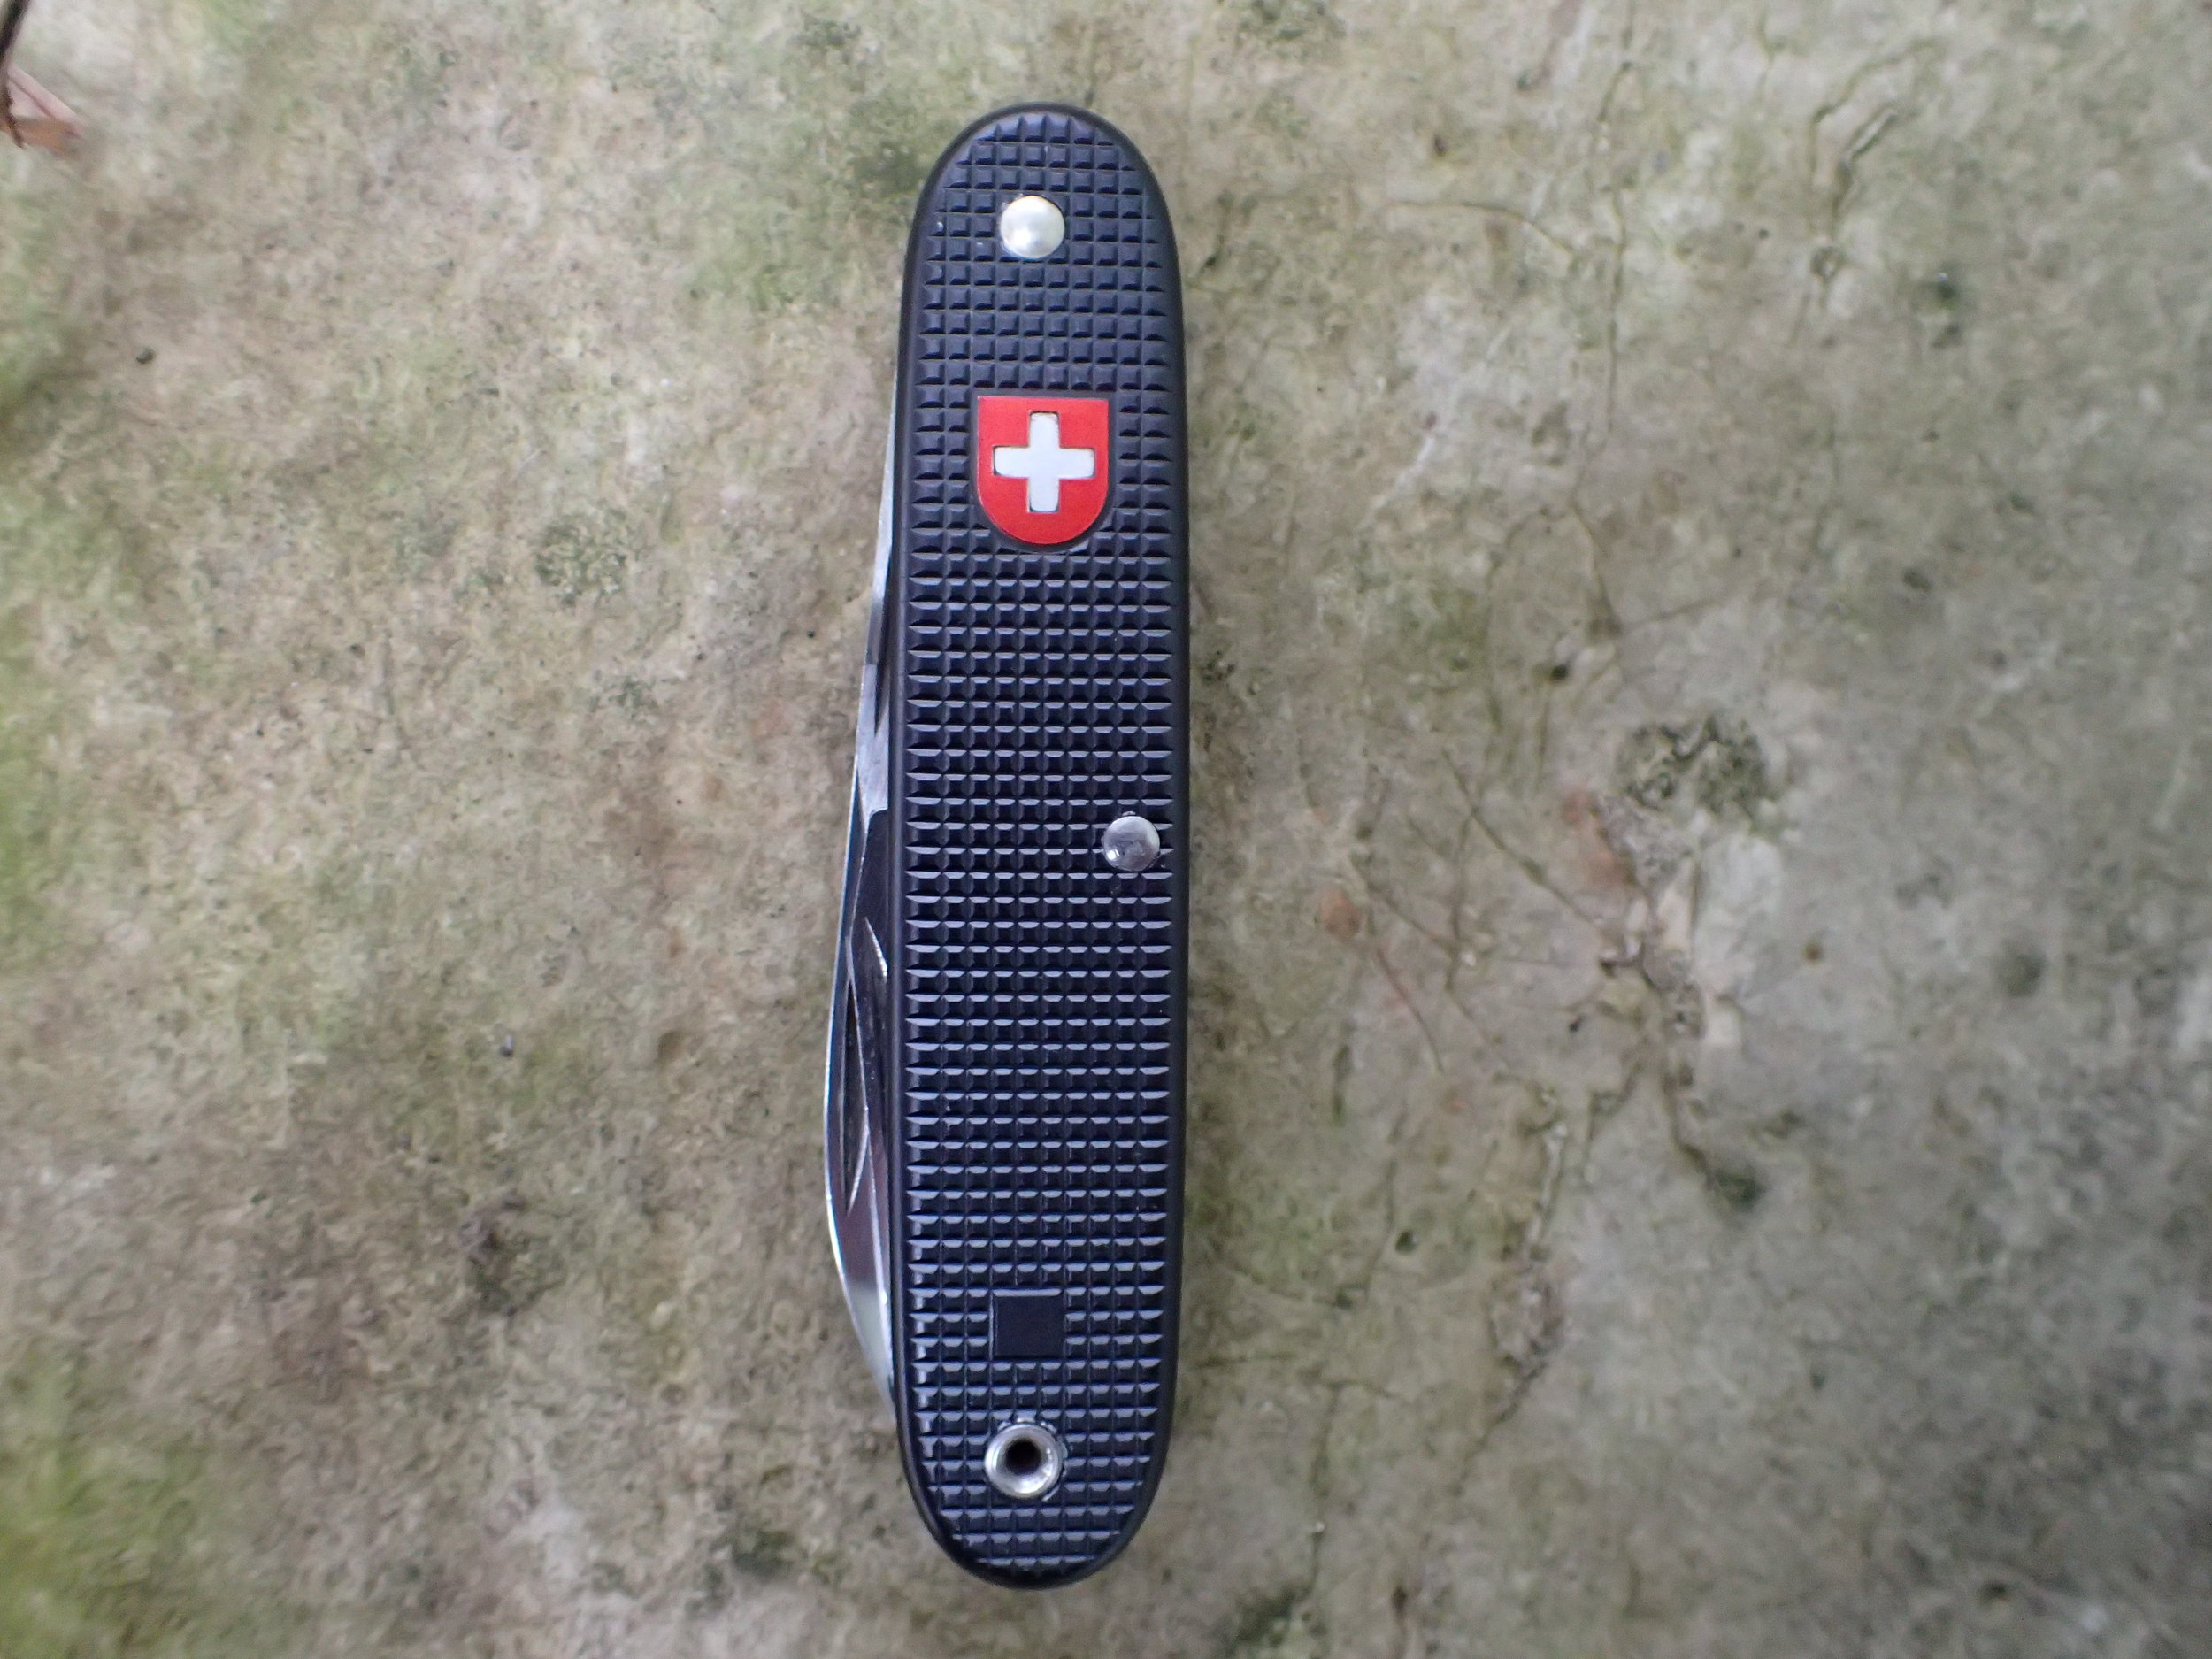 The Swiss Railway Soldier, also known as the Black Beauty, is a Grail SAK for many collectors.